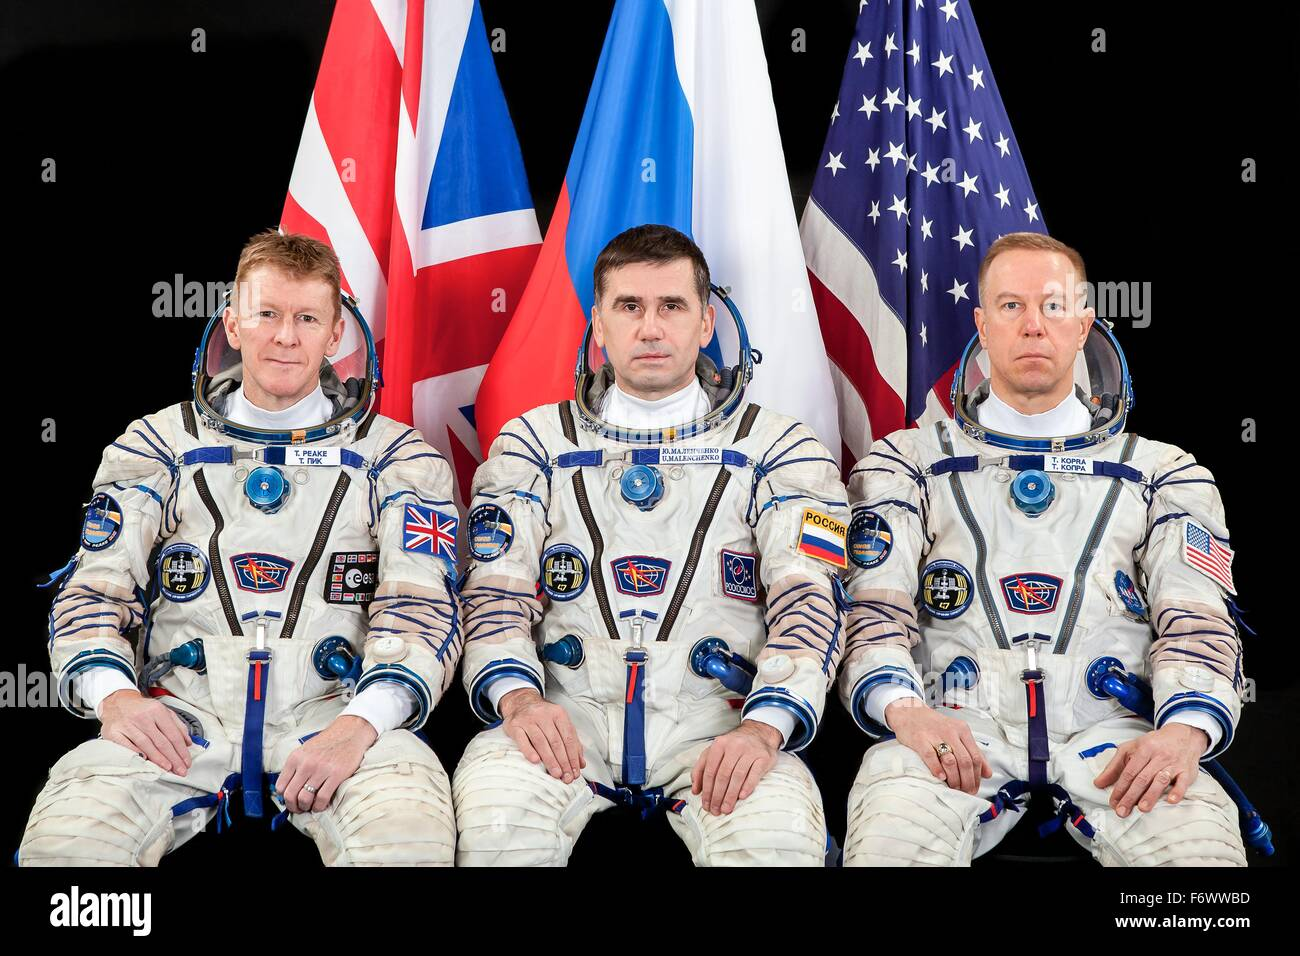 International Space Station Expedition 46/47 crew members (L-R): European Space Agency astronaut Timothy Peake, - Stock Image